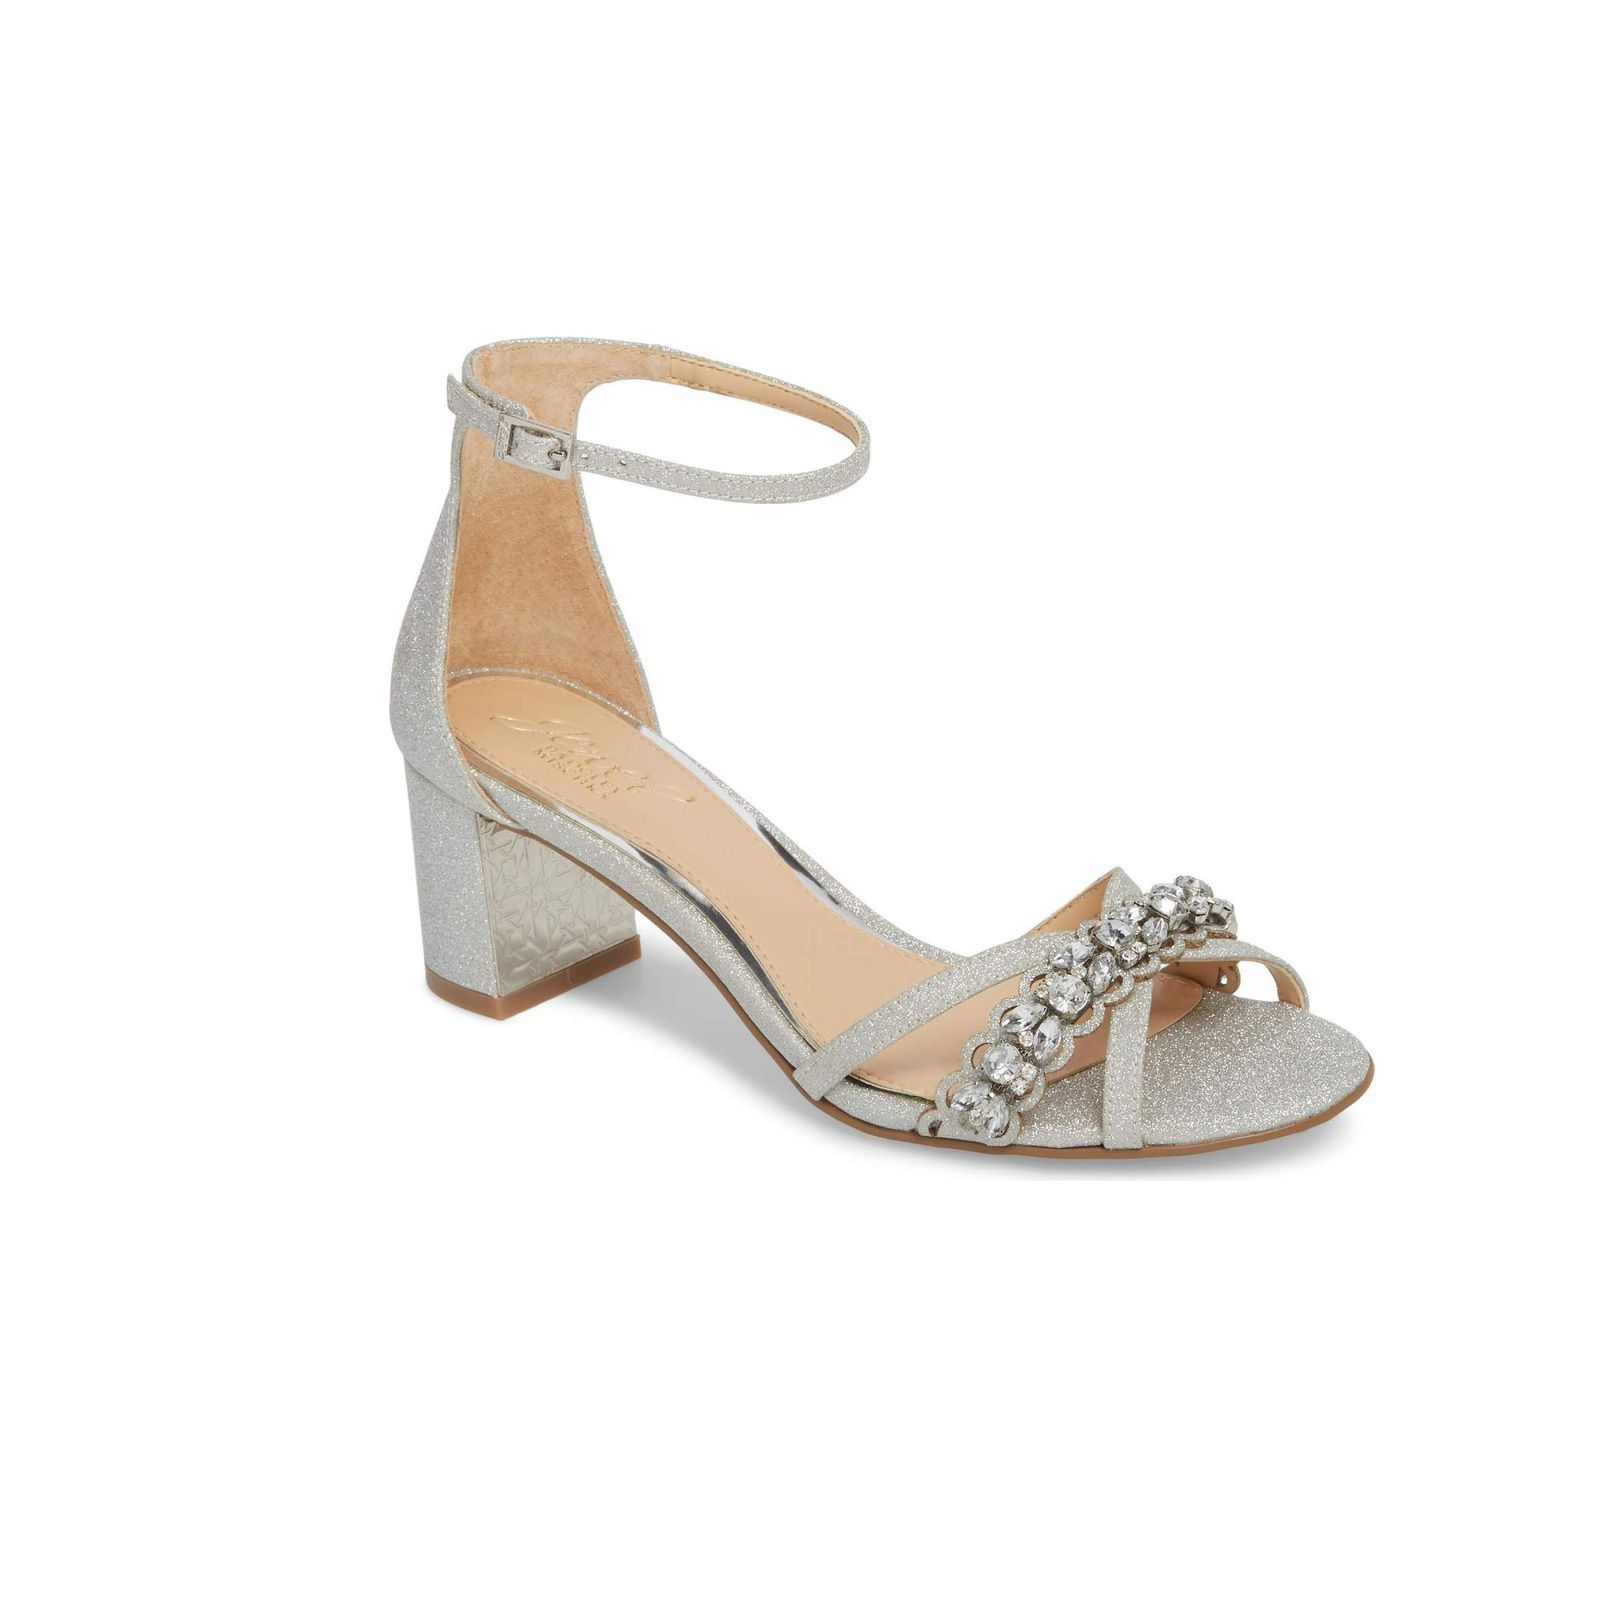 42+ Wedding guest shoes flats information